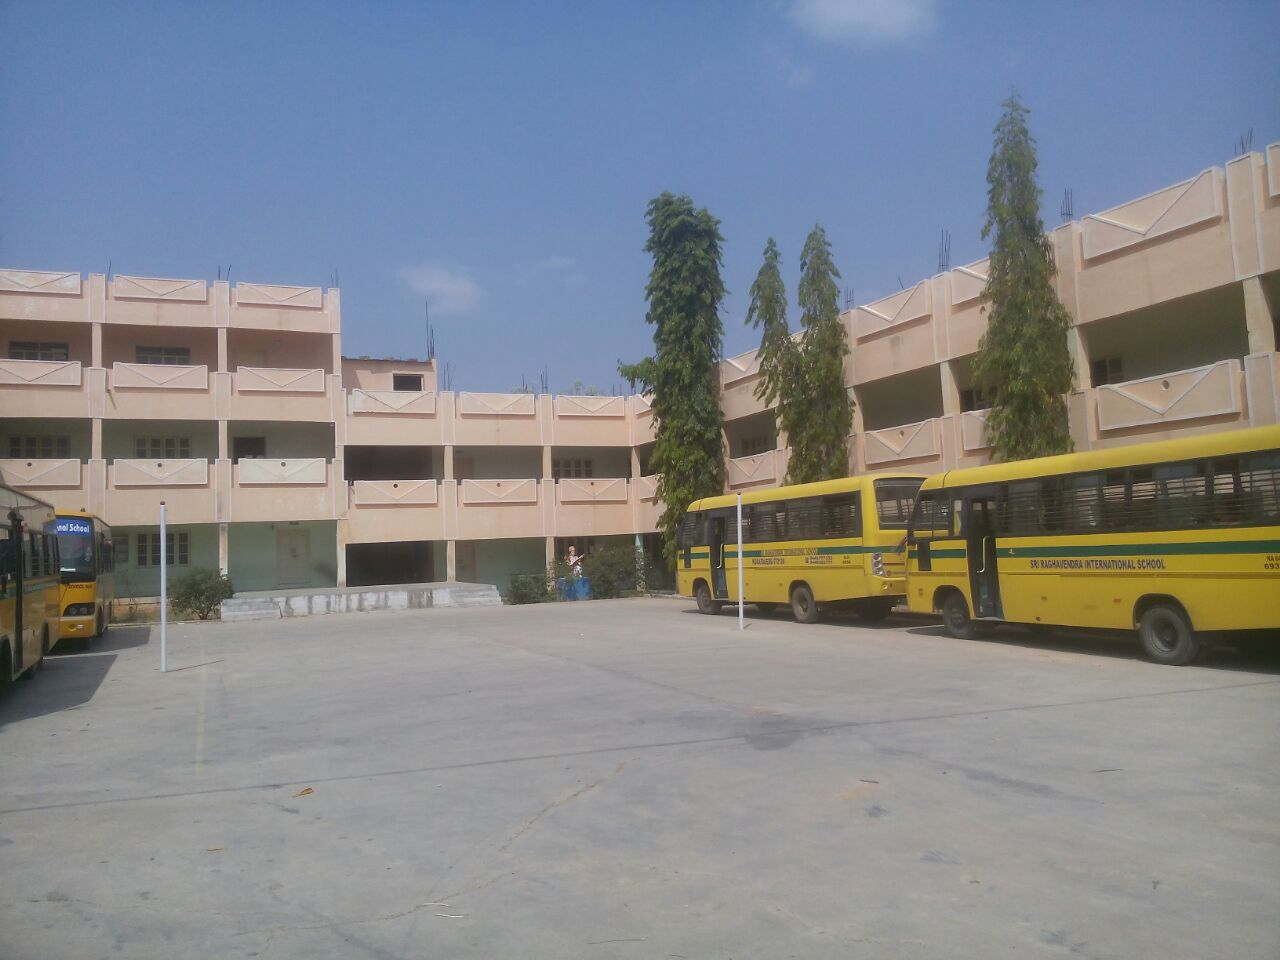 Front View of College